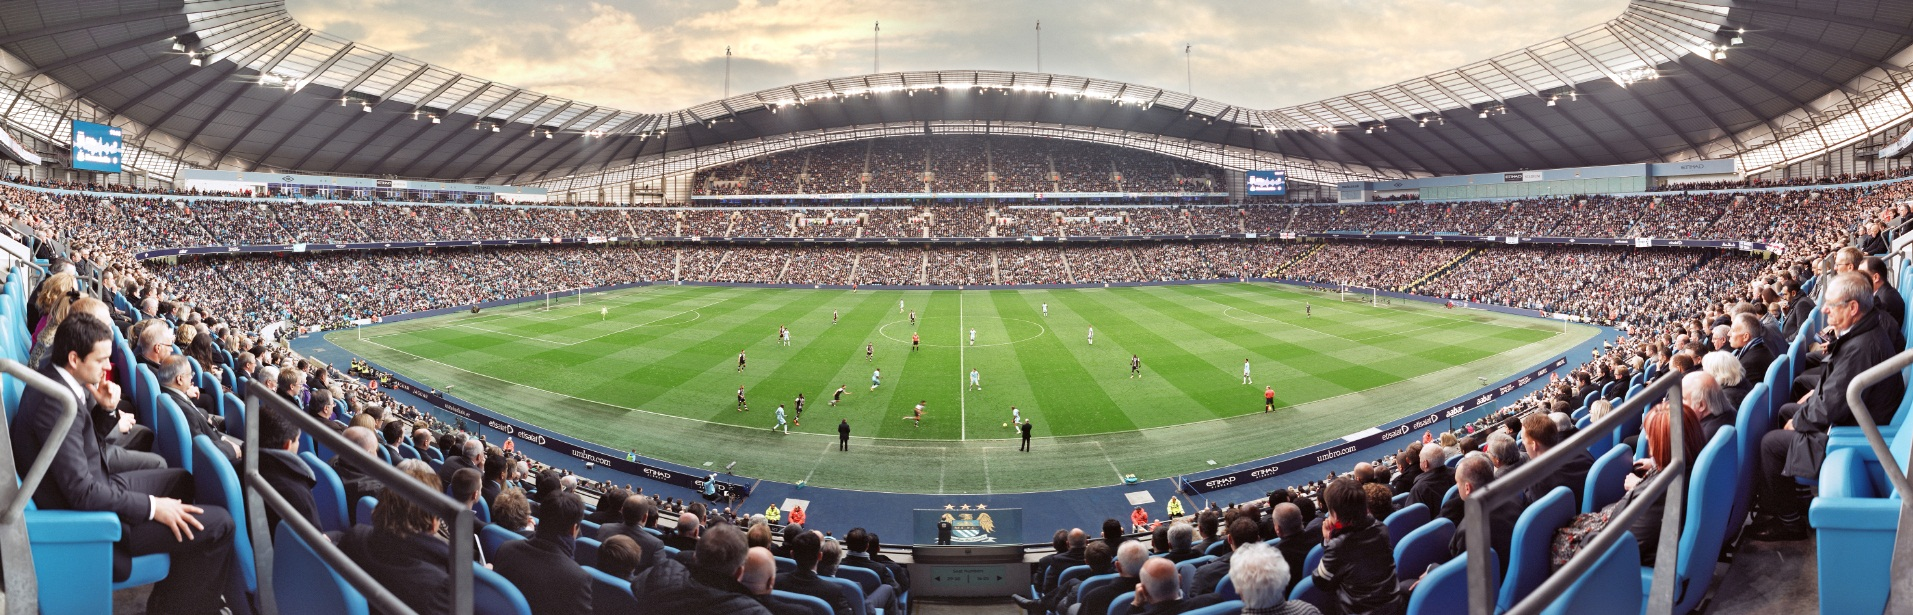 With Cisco Connected Sports solutions football fans can now get information at their finger-tips and share their match-day emotions and thrills without worrying about mobile connection issues